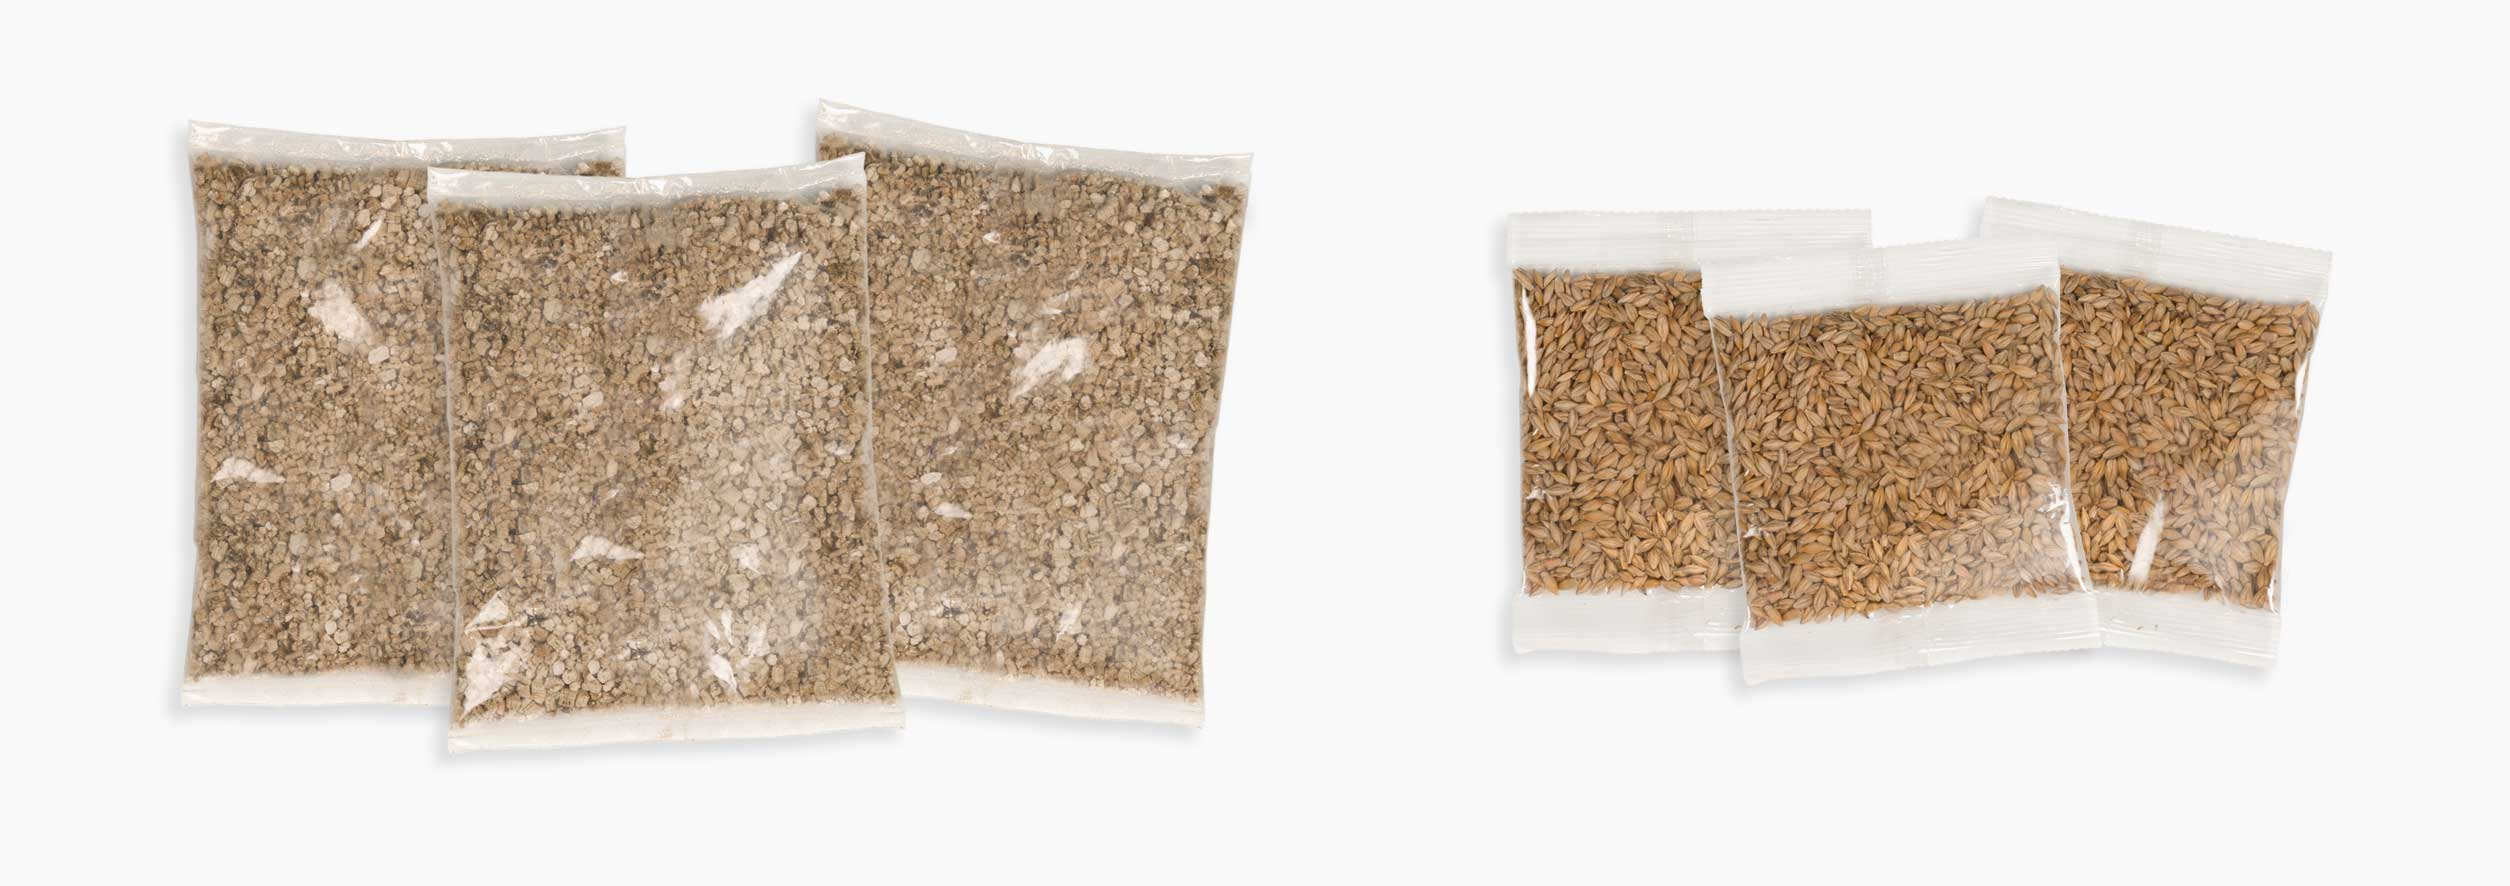 Senses 2.0 Grass Kit containing 3 sets of seeds and vermiculite